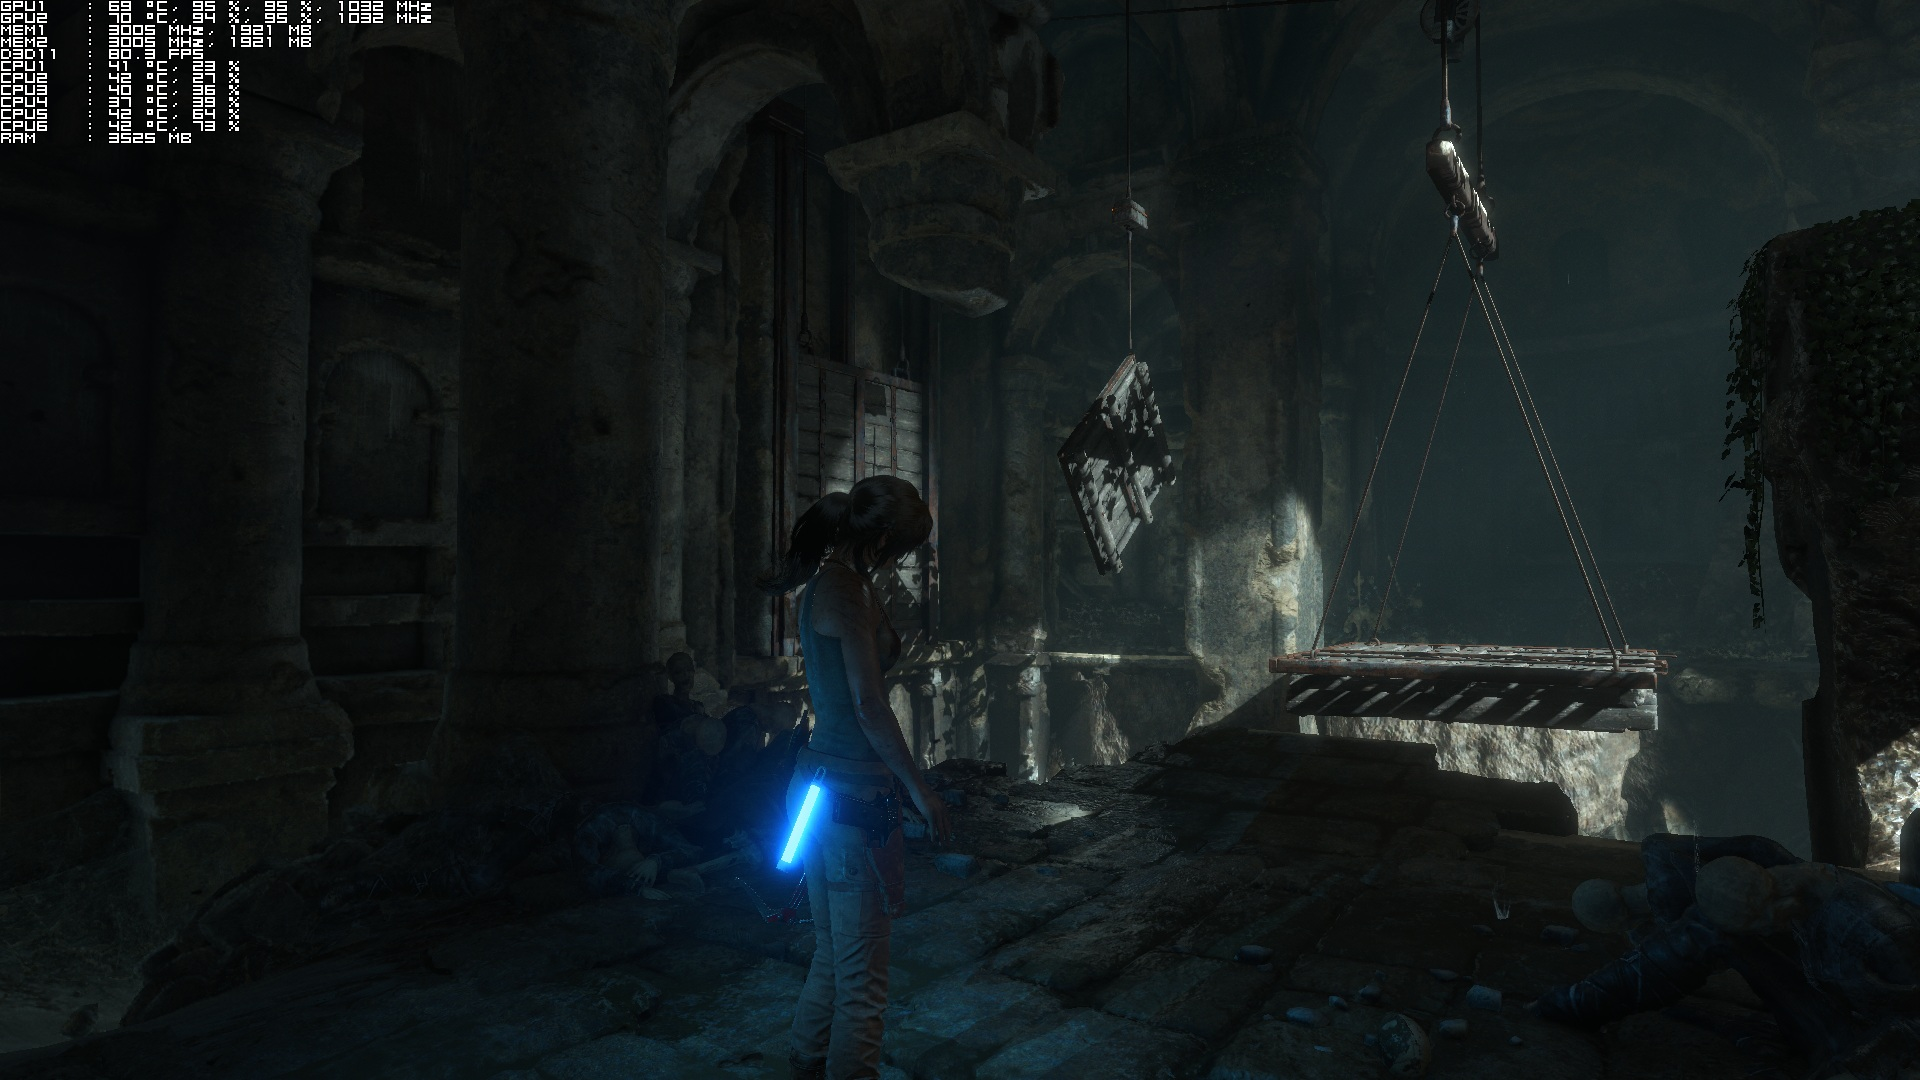 Rise of the Tomb Raider - PC Performance Analysis - DSOGaming